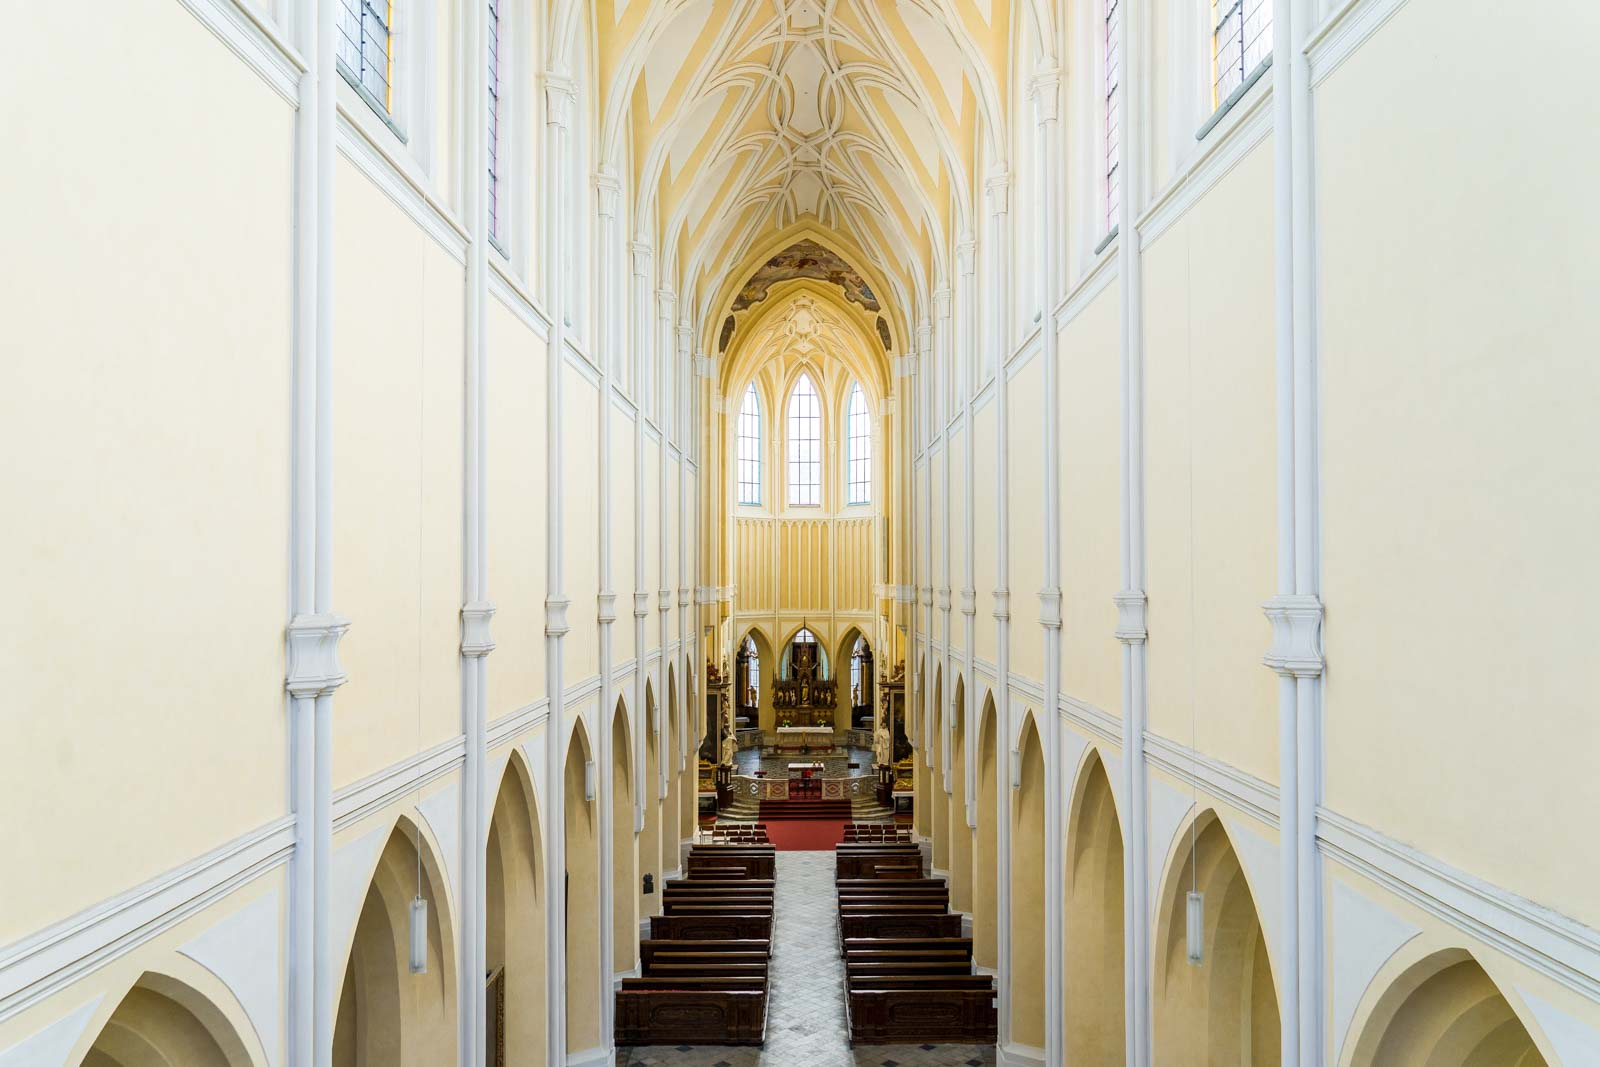 Cathedral of Our Lady at Sedlec, Kutna Hora, Czech Republic